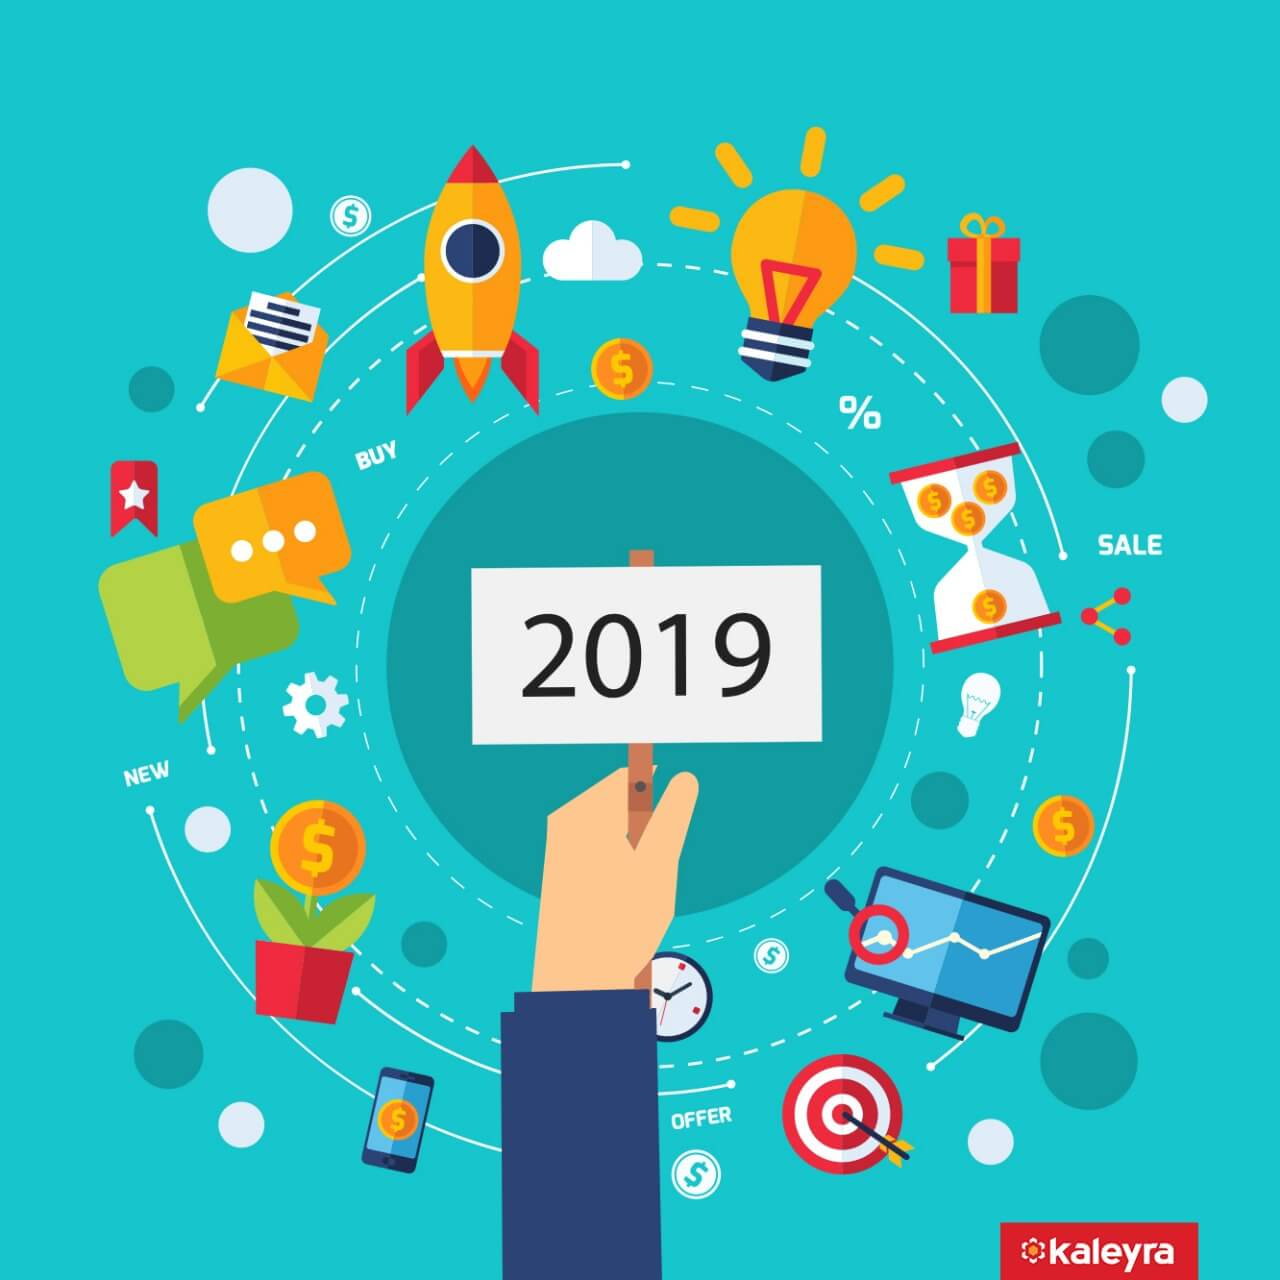 Top 10 marketing trends for 2019 that you simply can't ignore